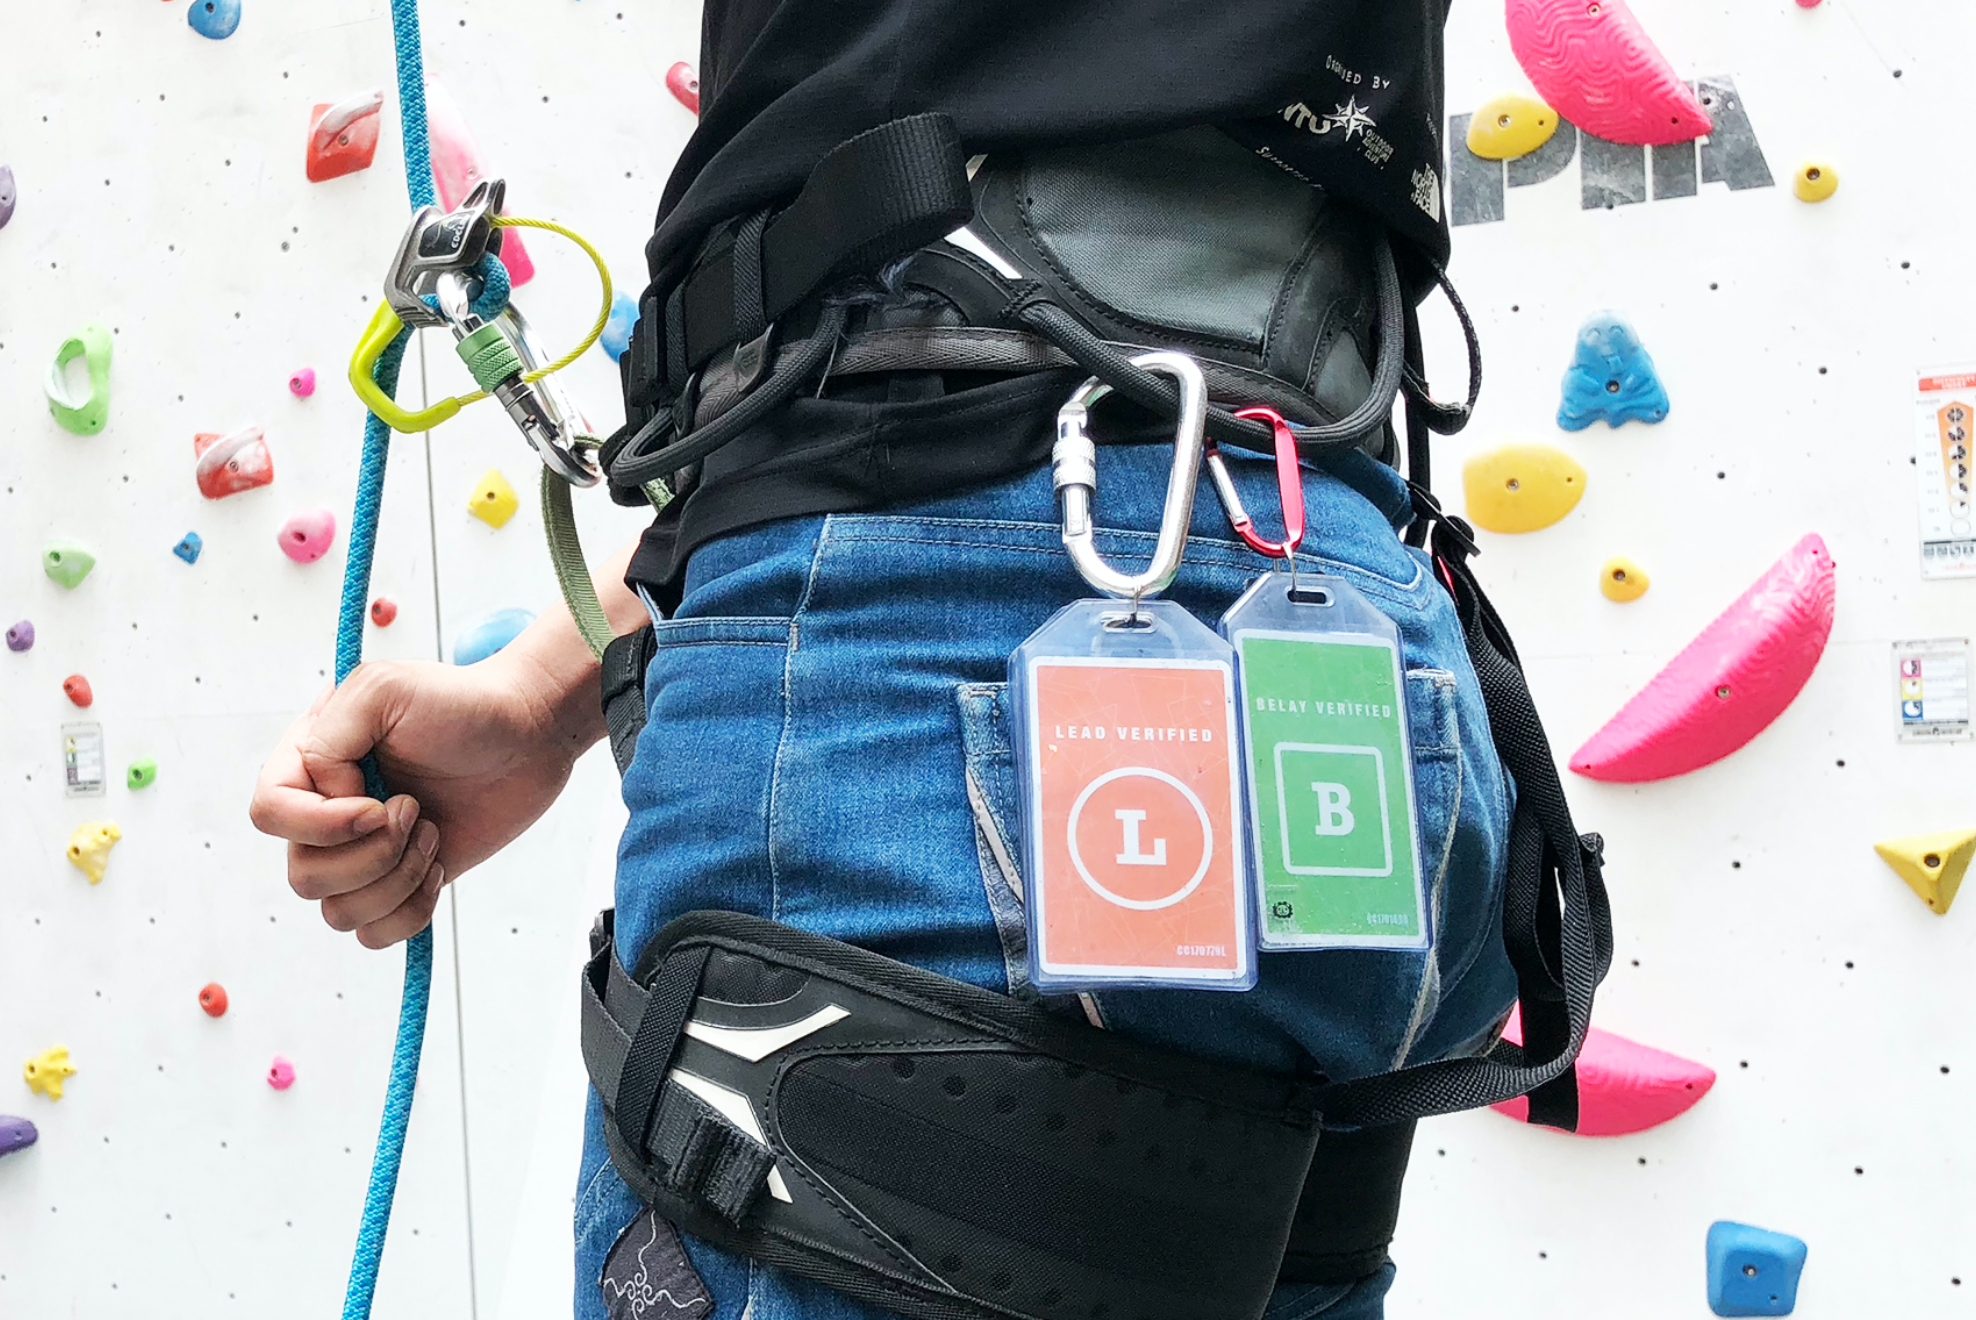 Ready for verification? - Take the assessment and get a verification tag to display on your harness! This is required only if you wish to use the lead climbing wall, or to use a belay method not shown in the safety briefing.